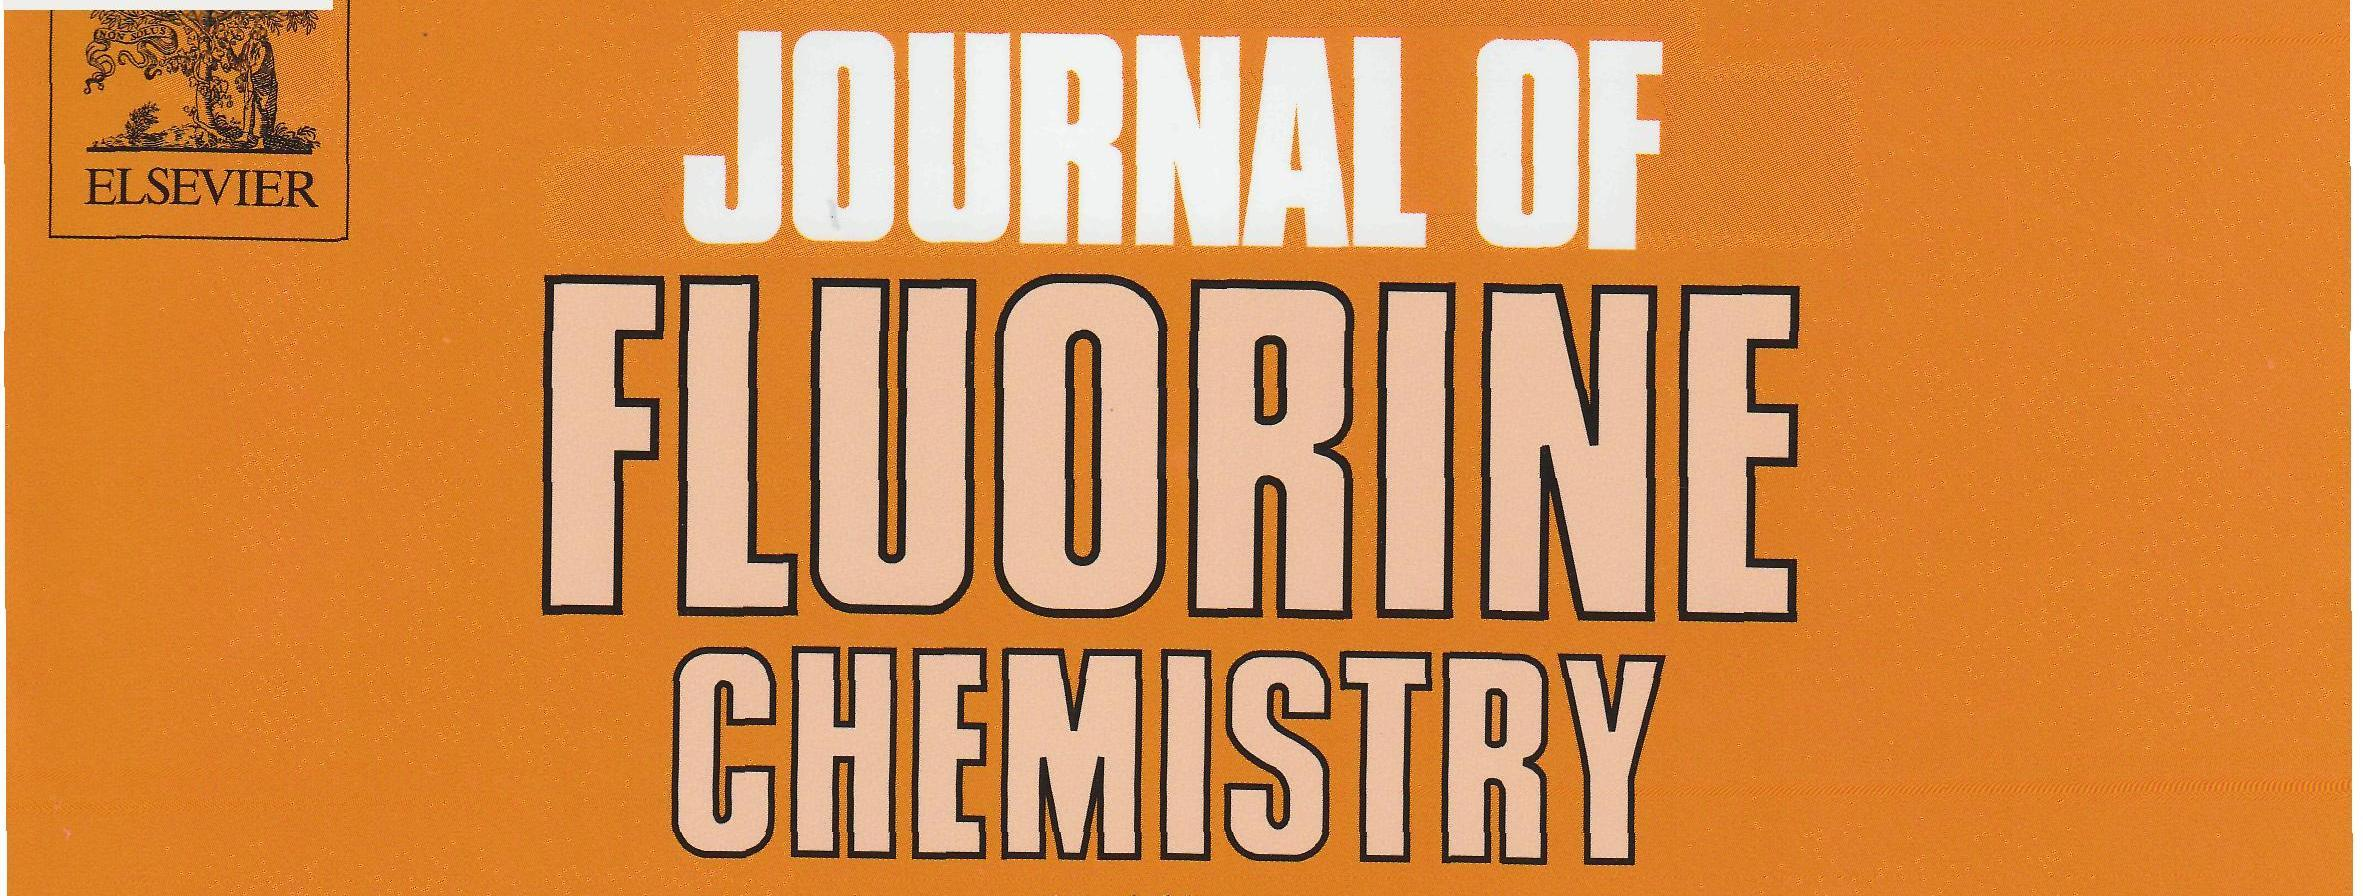 Journal_of_Fluorin_Chemistry